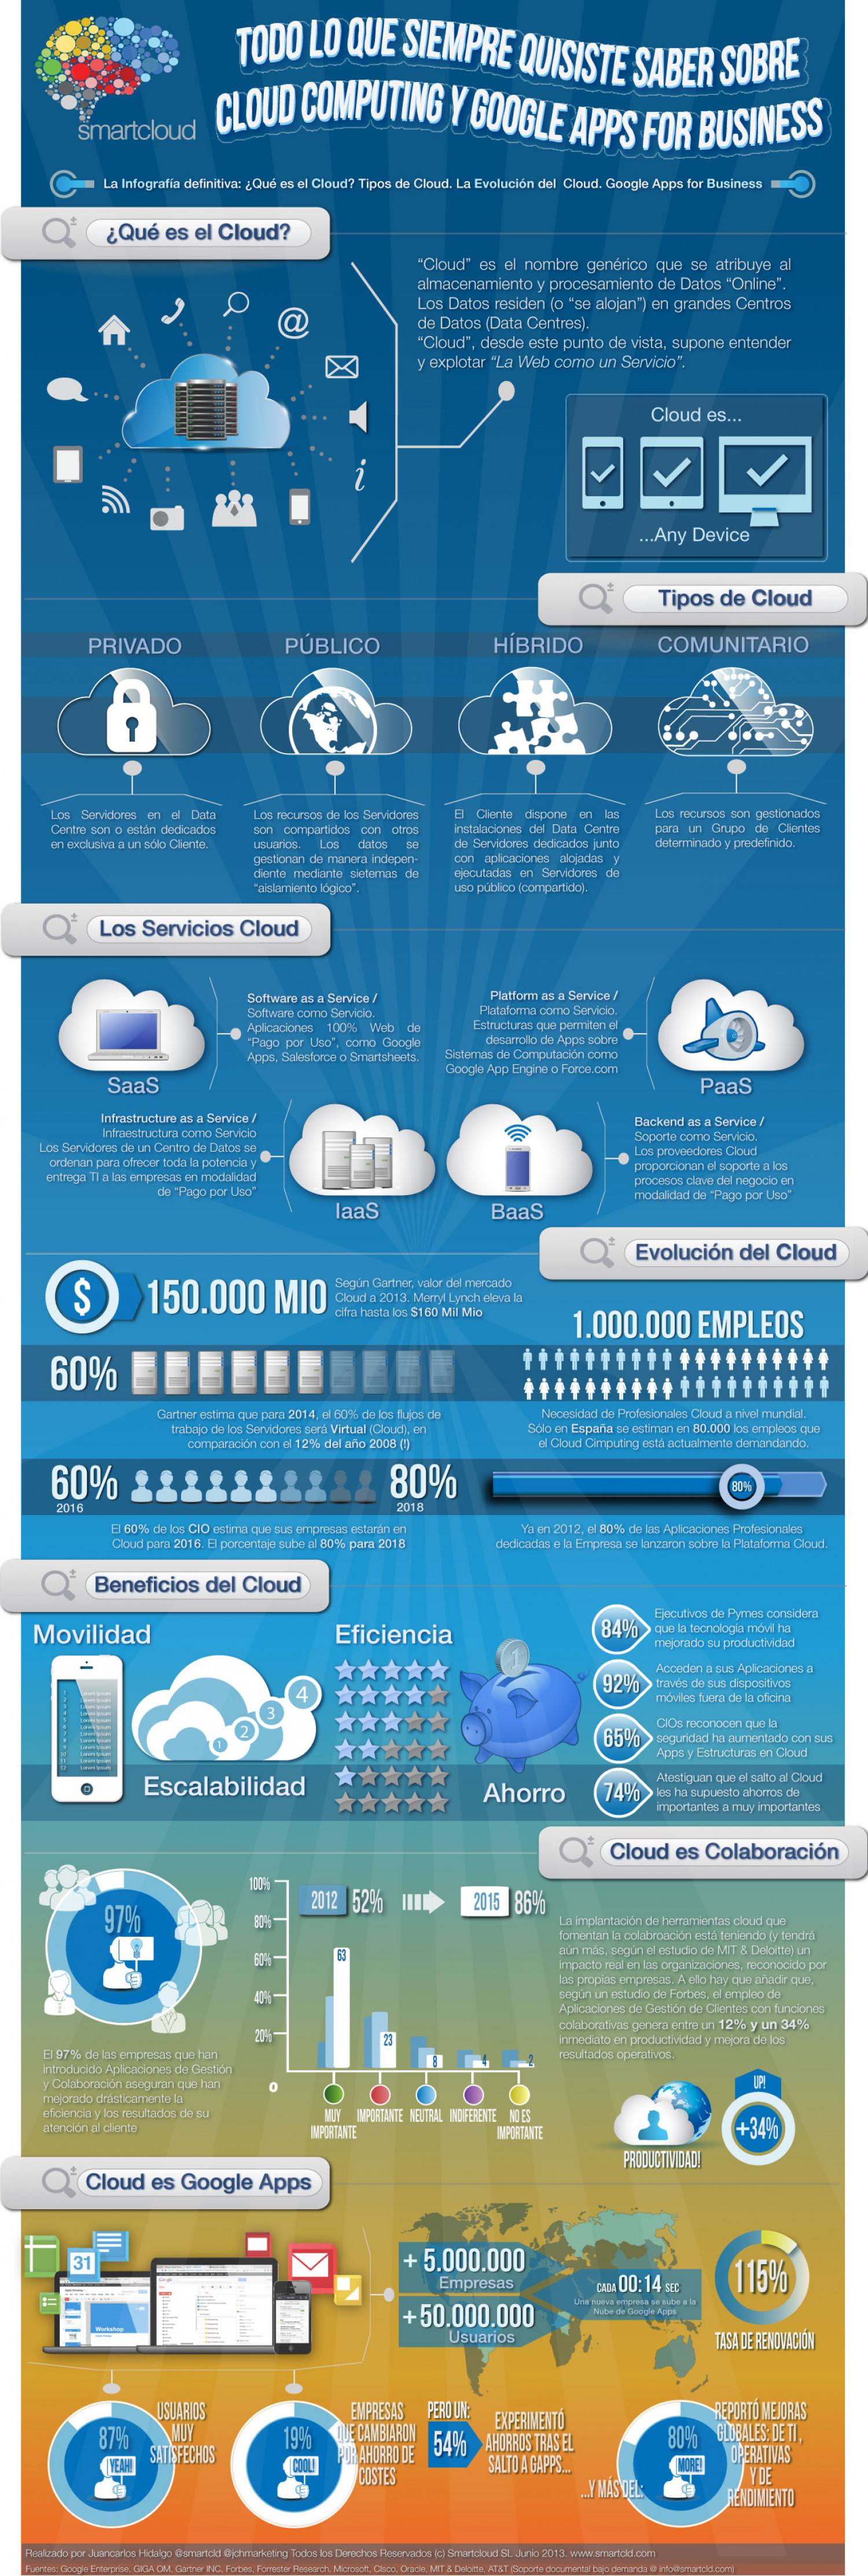 All what you always wanted to know about #Cloud #Computing and #Google #Apps (Spanish) Infographic